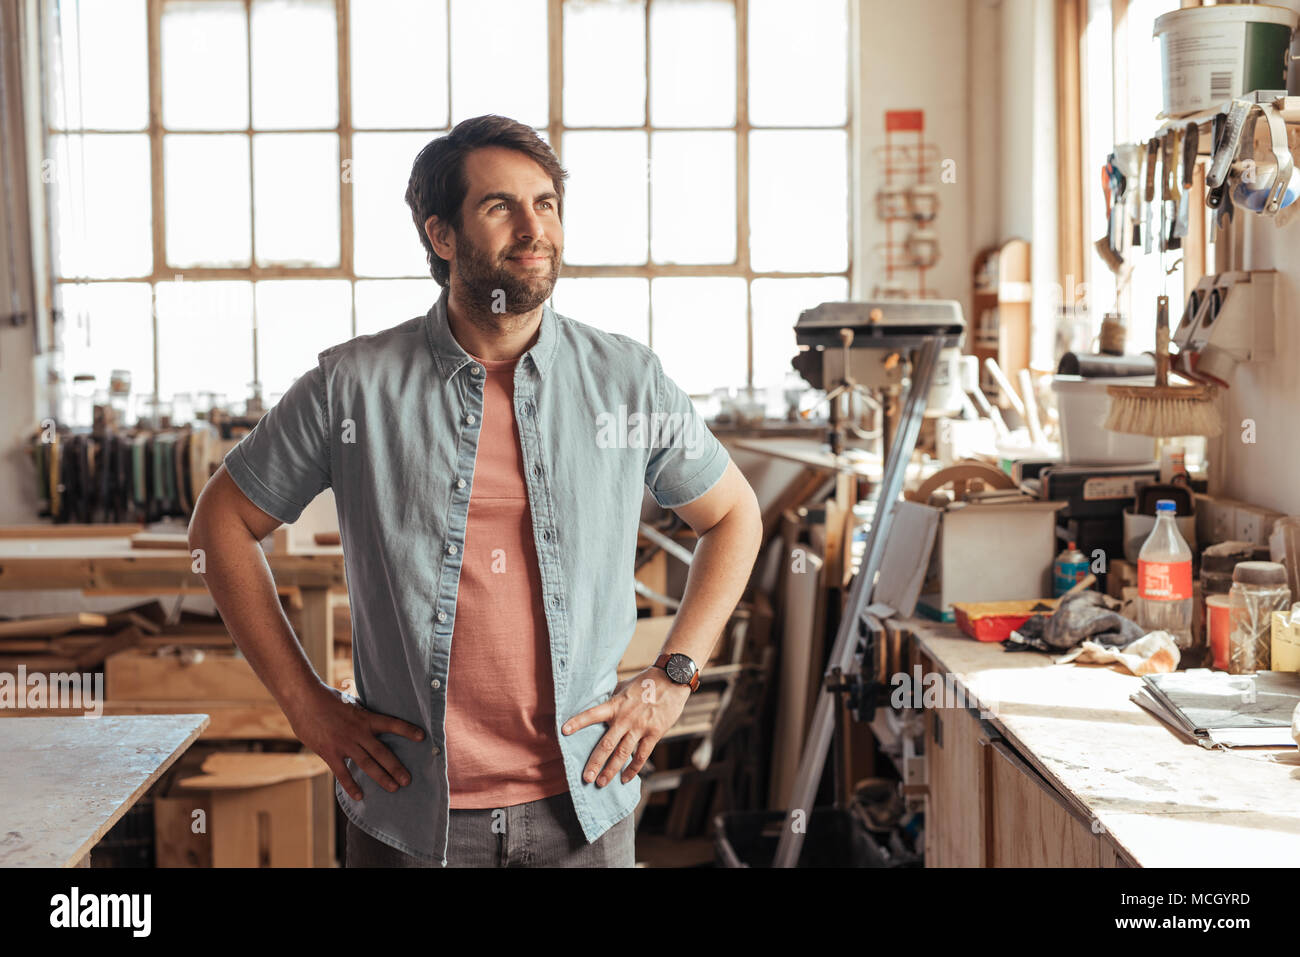 Smiling young woodworker thinking up new designs while standing with his arms crossed by a workbench full of tools in his carpentry workshop - Stock Image